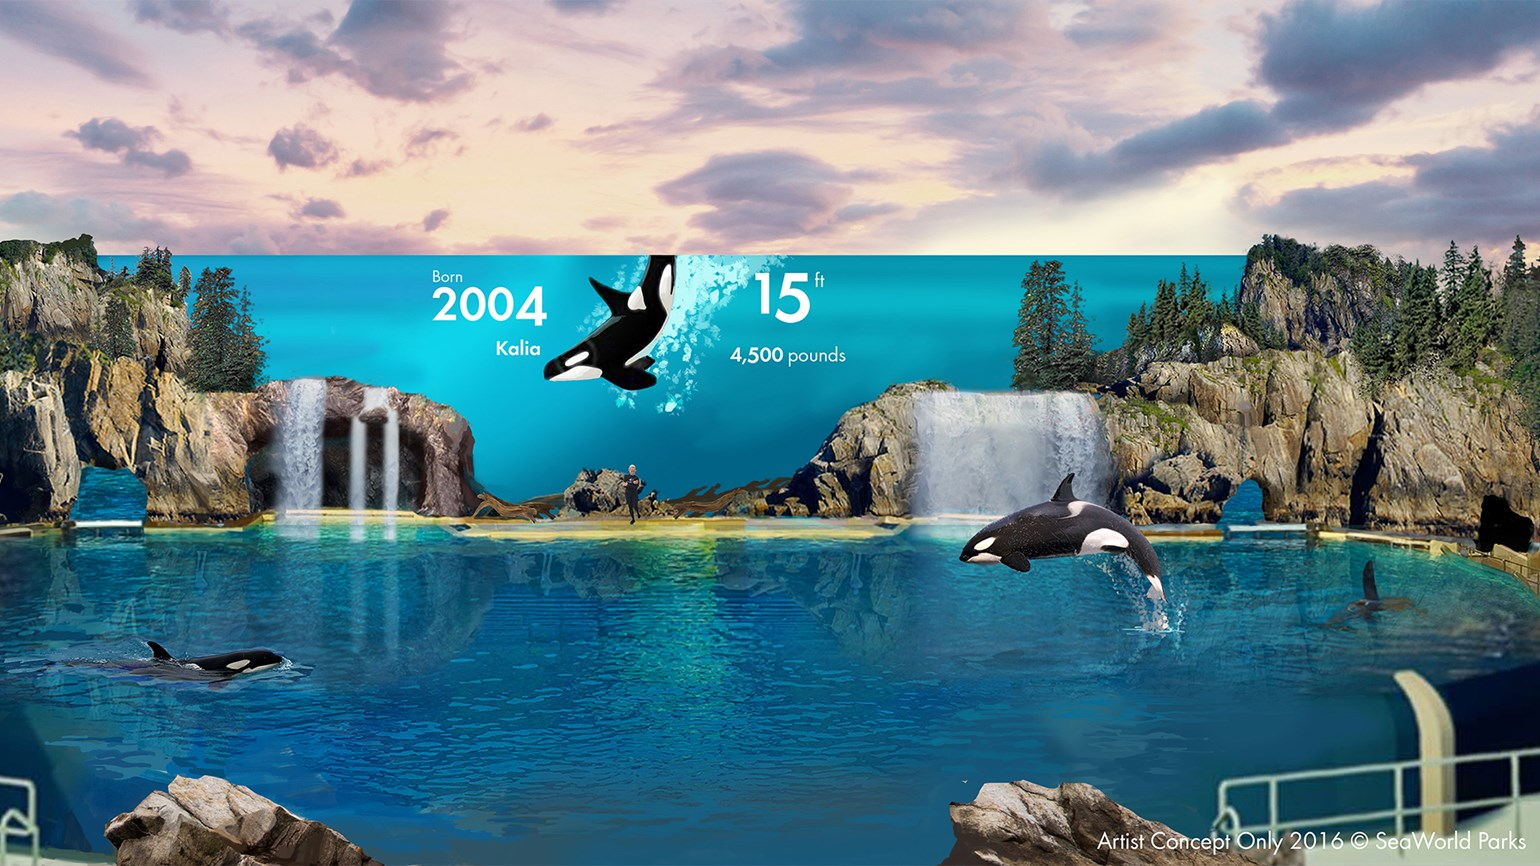 SeaWorld describes upcoming orca exhibit as 'live documentary'